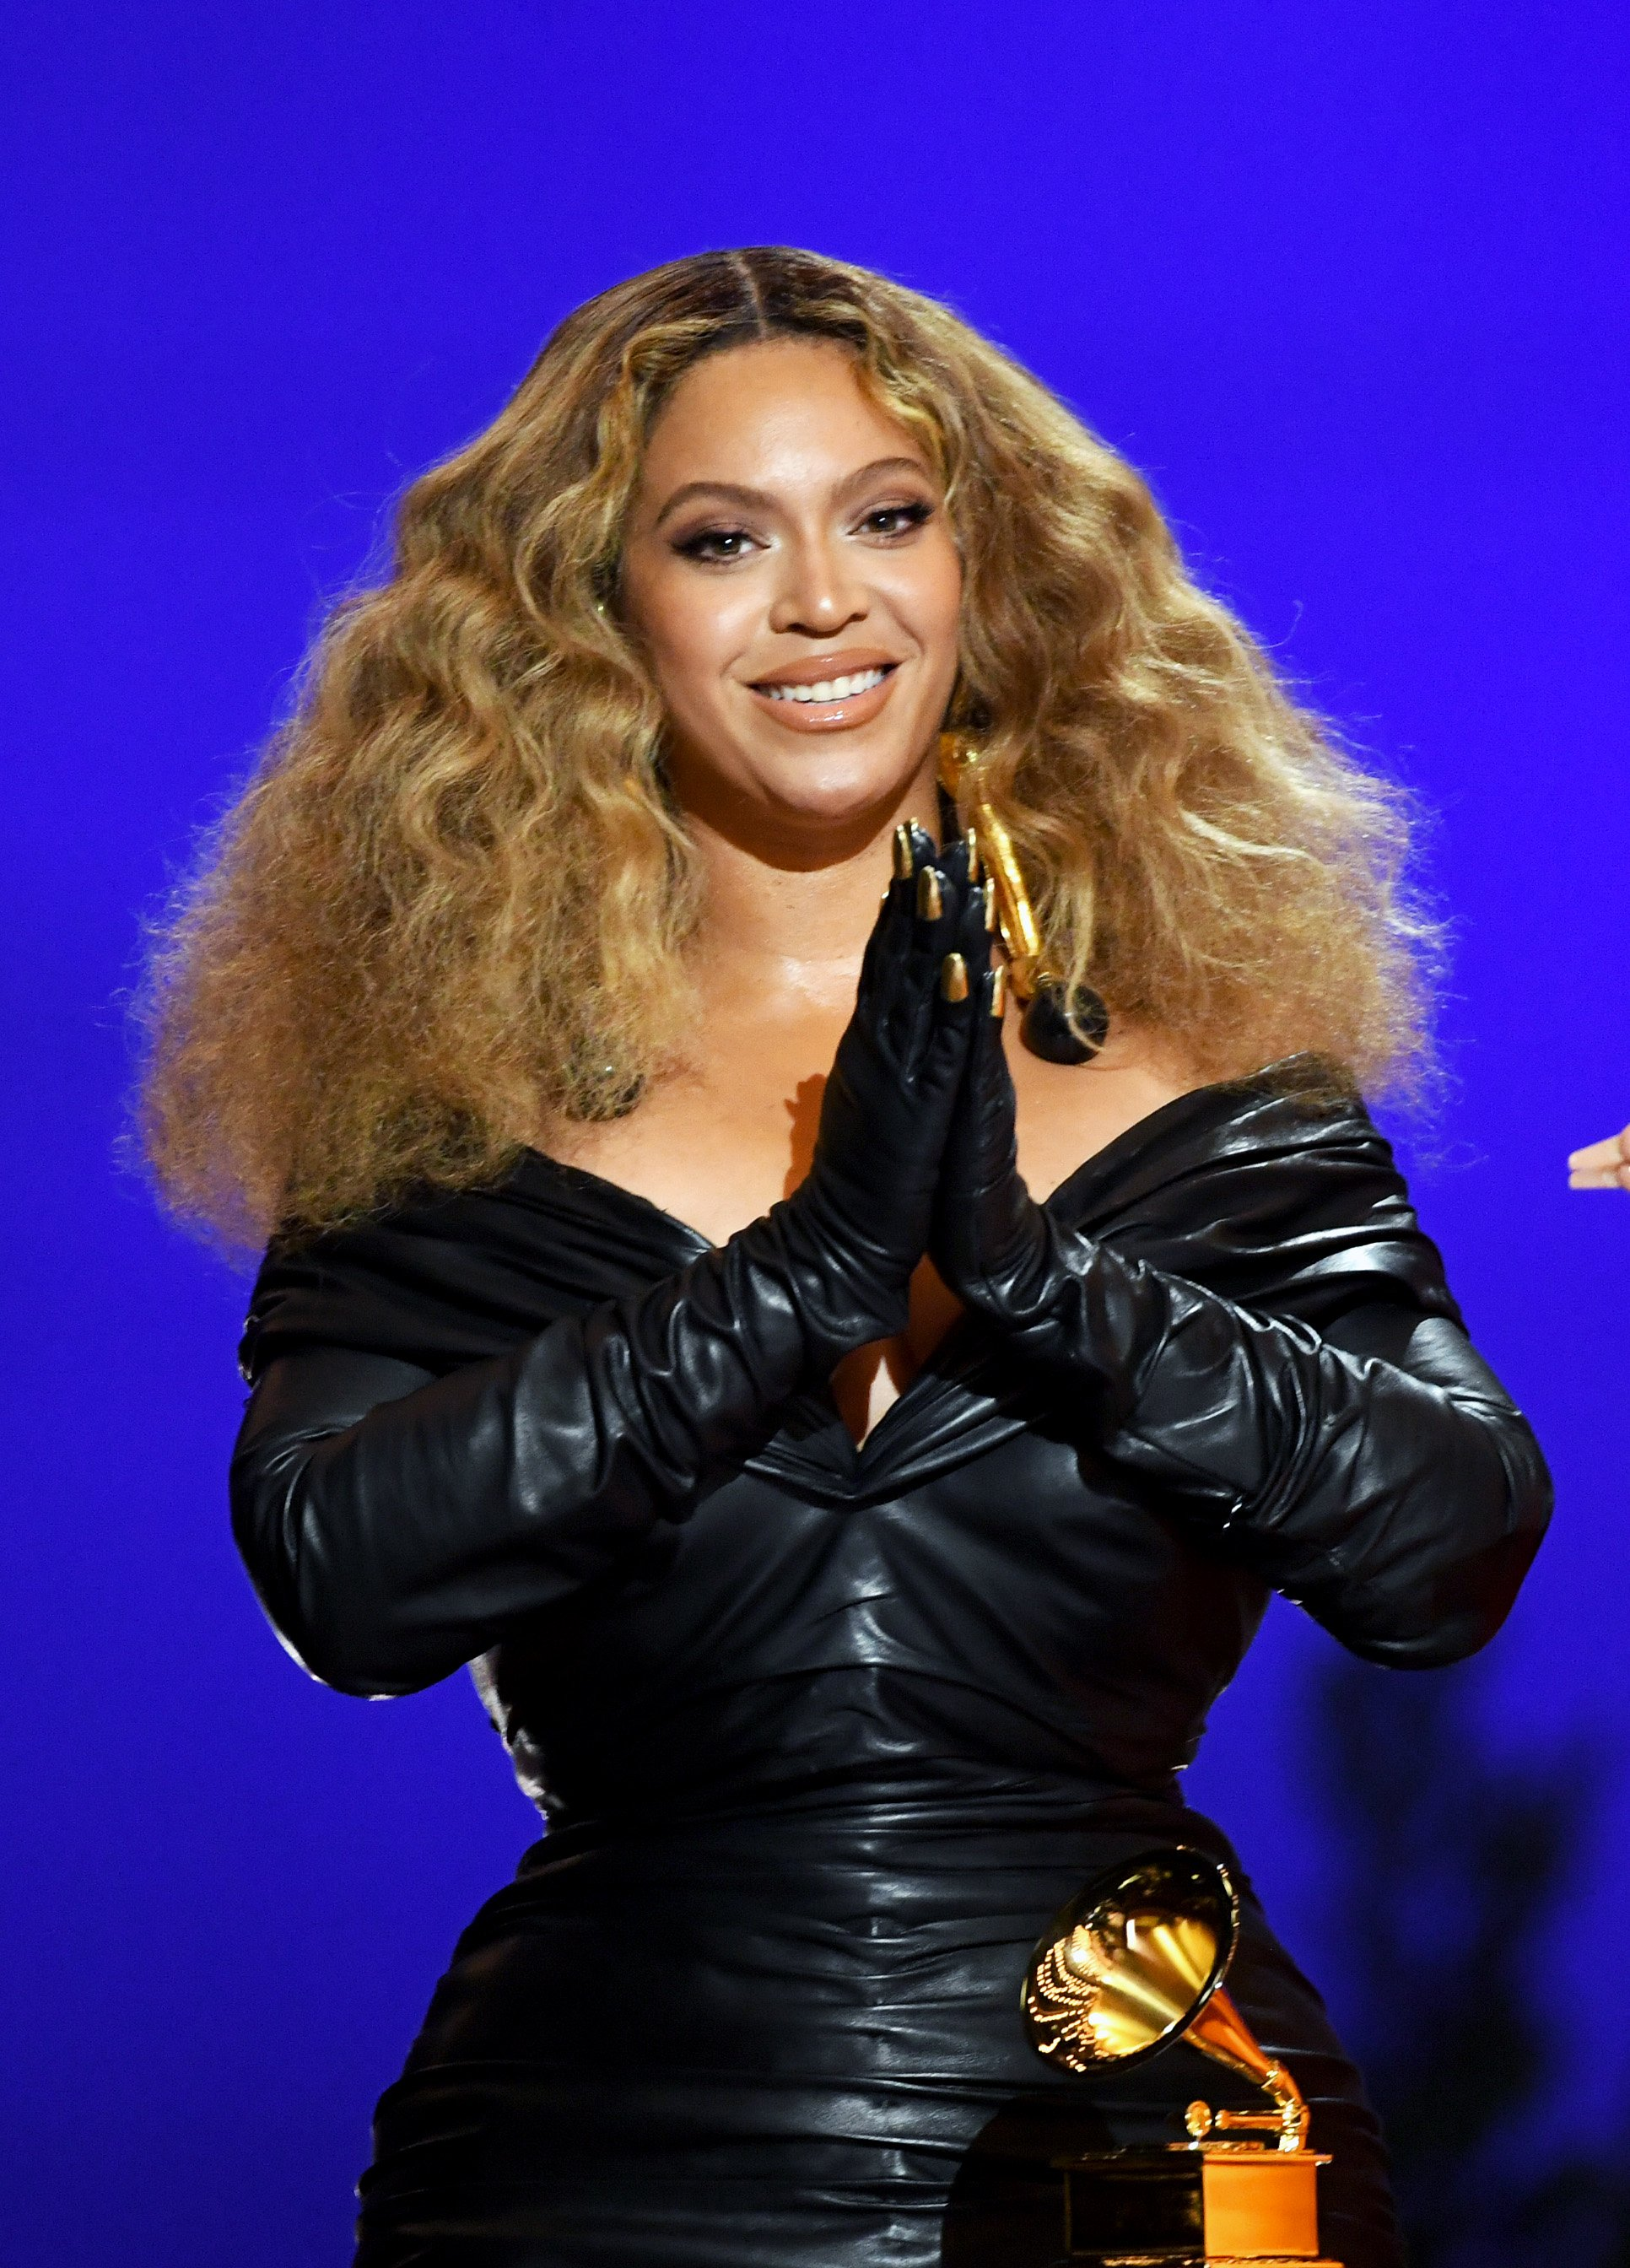 Beyoncé accepts an award at the 63rd Annual Grammy Awards on March 14, 2021 in Los Angeles, California | Photo: Getty Images